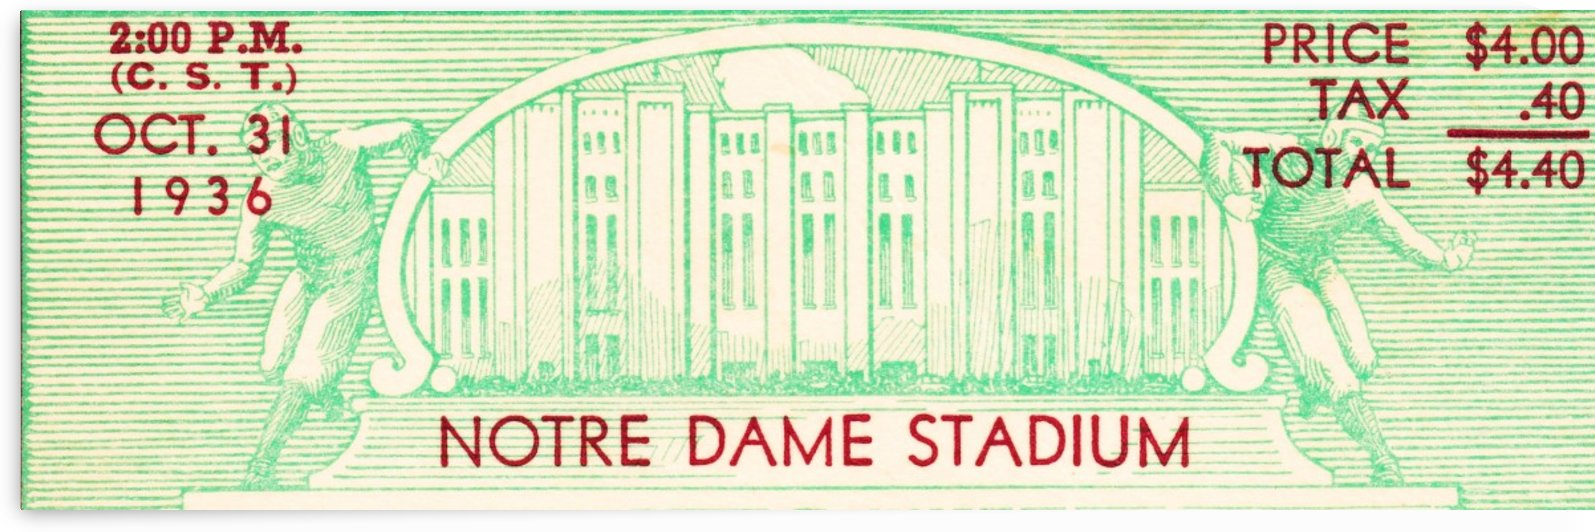 notre dame football fathers day gifts by Row One Brand